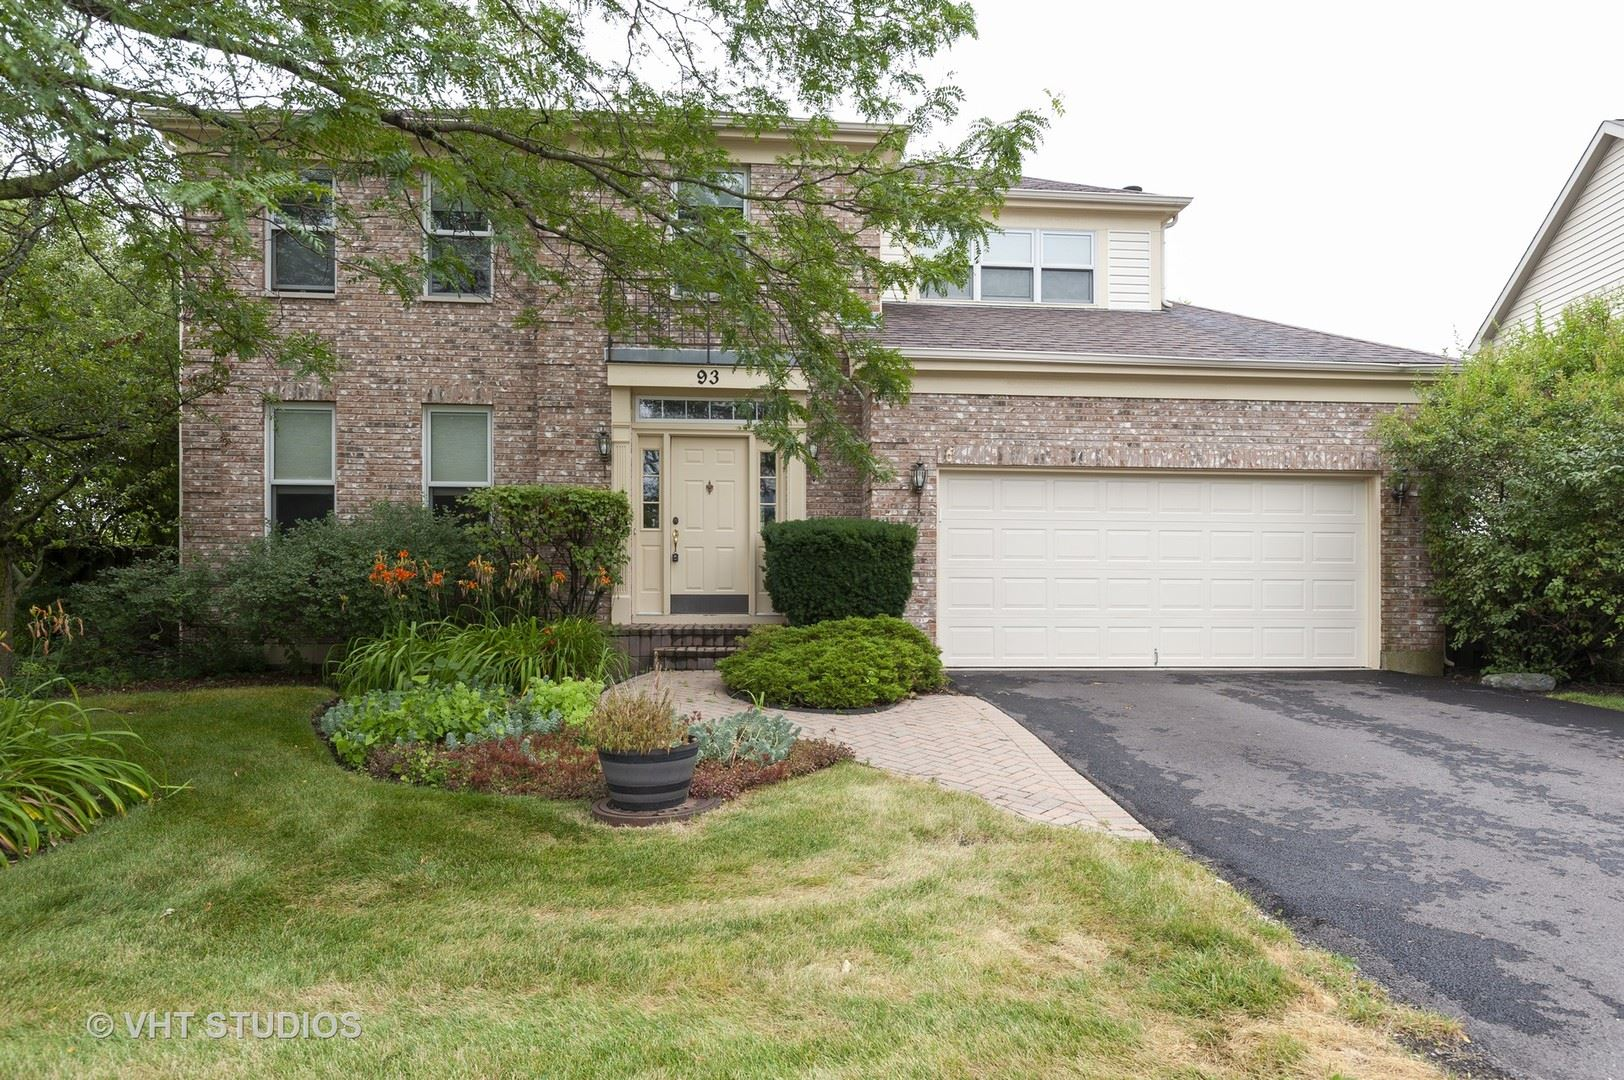 93 Cambridge Drive, Grayslake, IL 60030 - #: 10711134